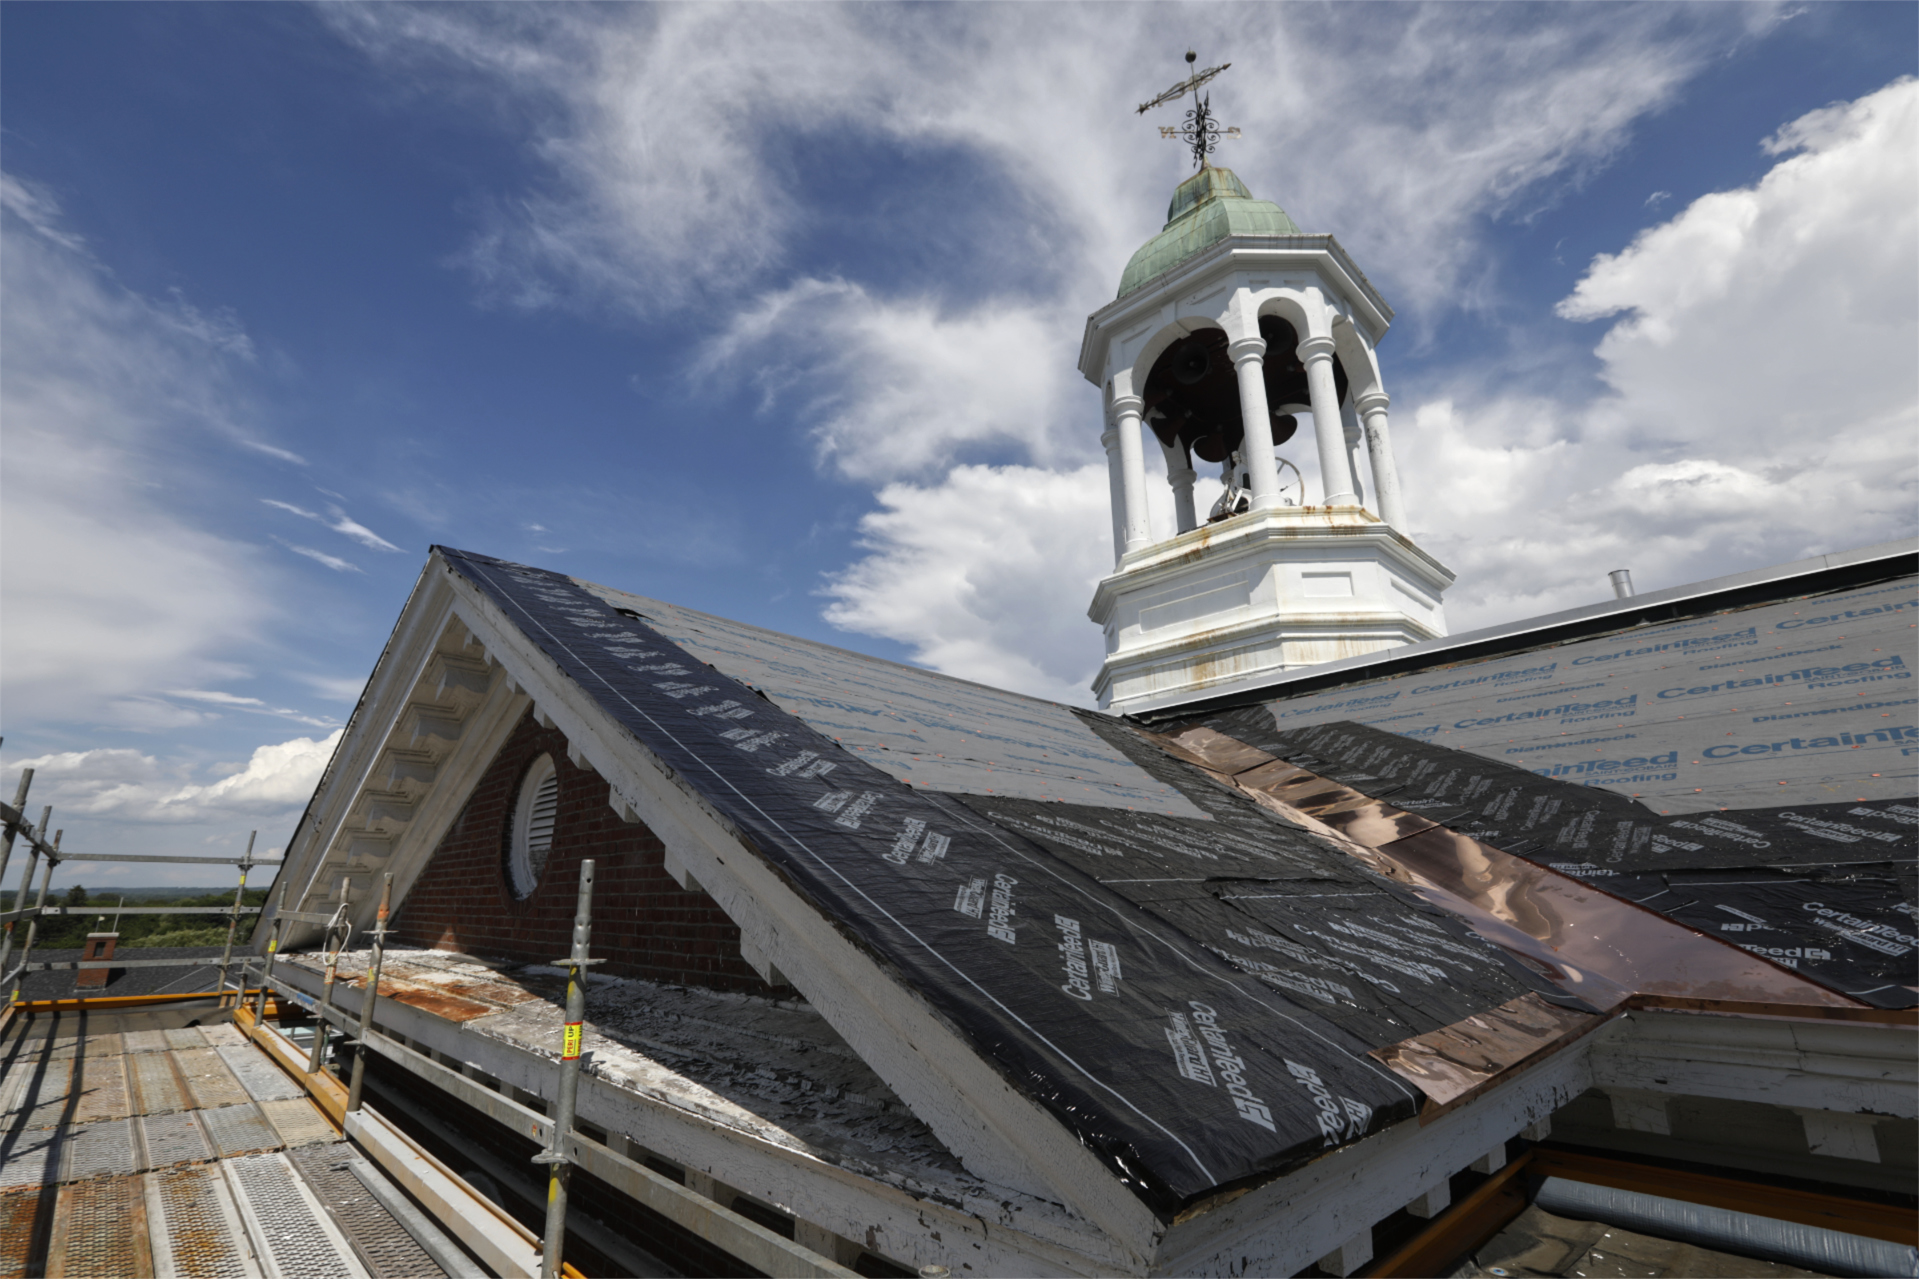 With the century-old slate removed from Hathorn's roof, new weather barrier and copper flashing have been placed in preparation for the new slate in this June 30 image. (Theophil Syslo/Bates College)